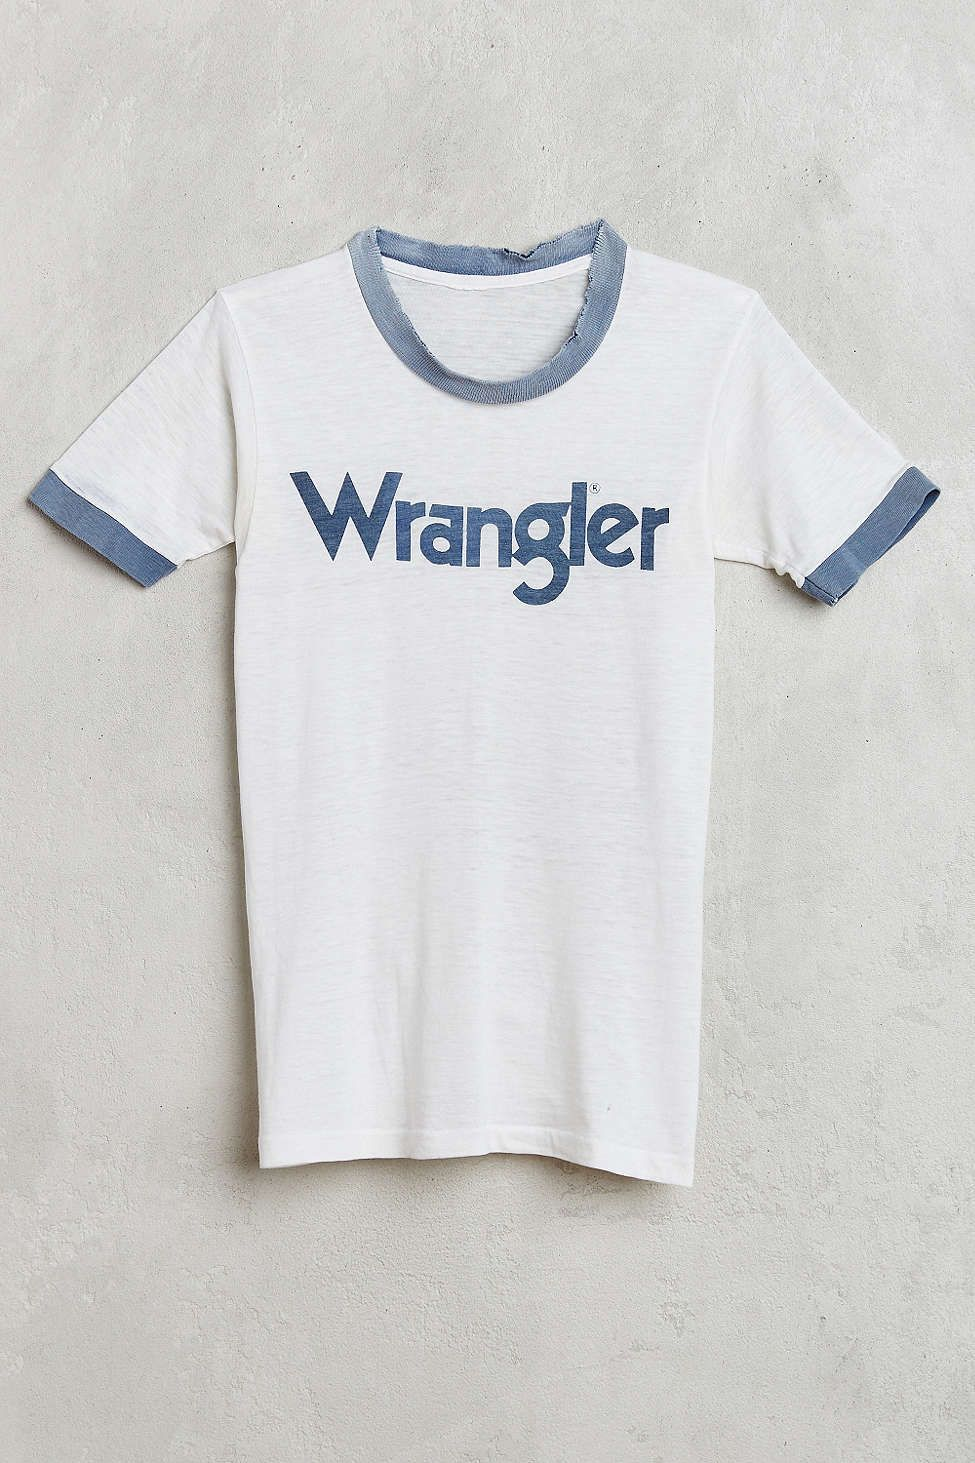 aab334d18e877 Vintage Wrangler Ringer Tee - Urban Outfitters | home design ...